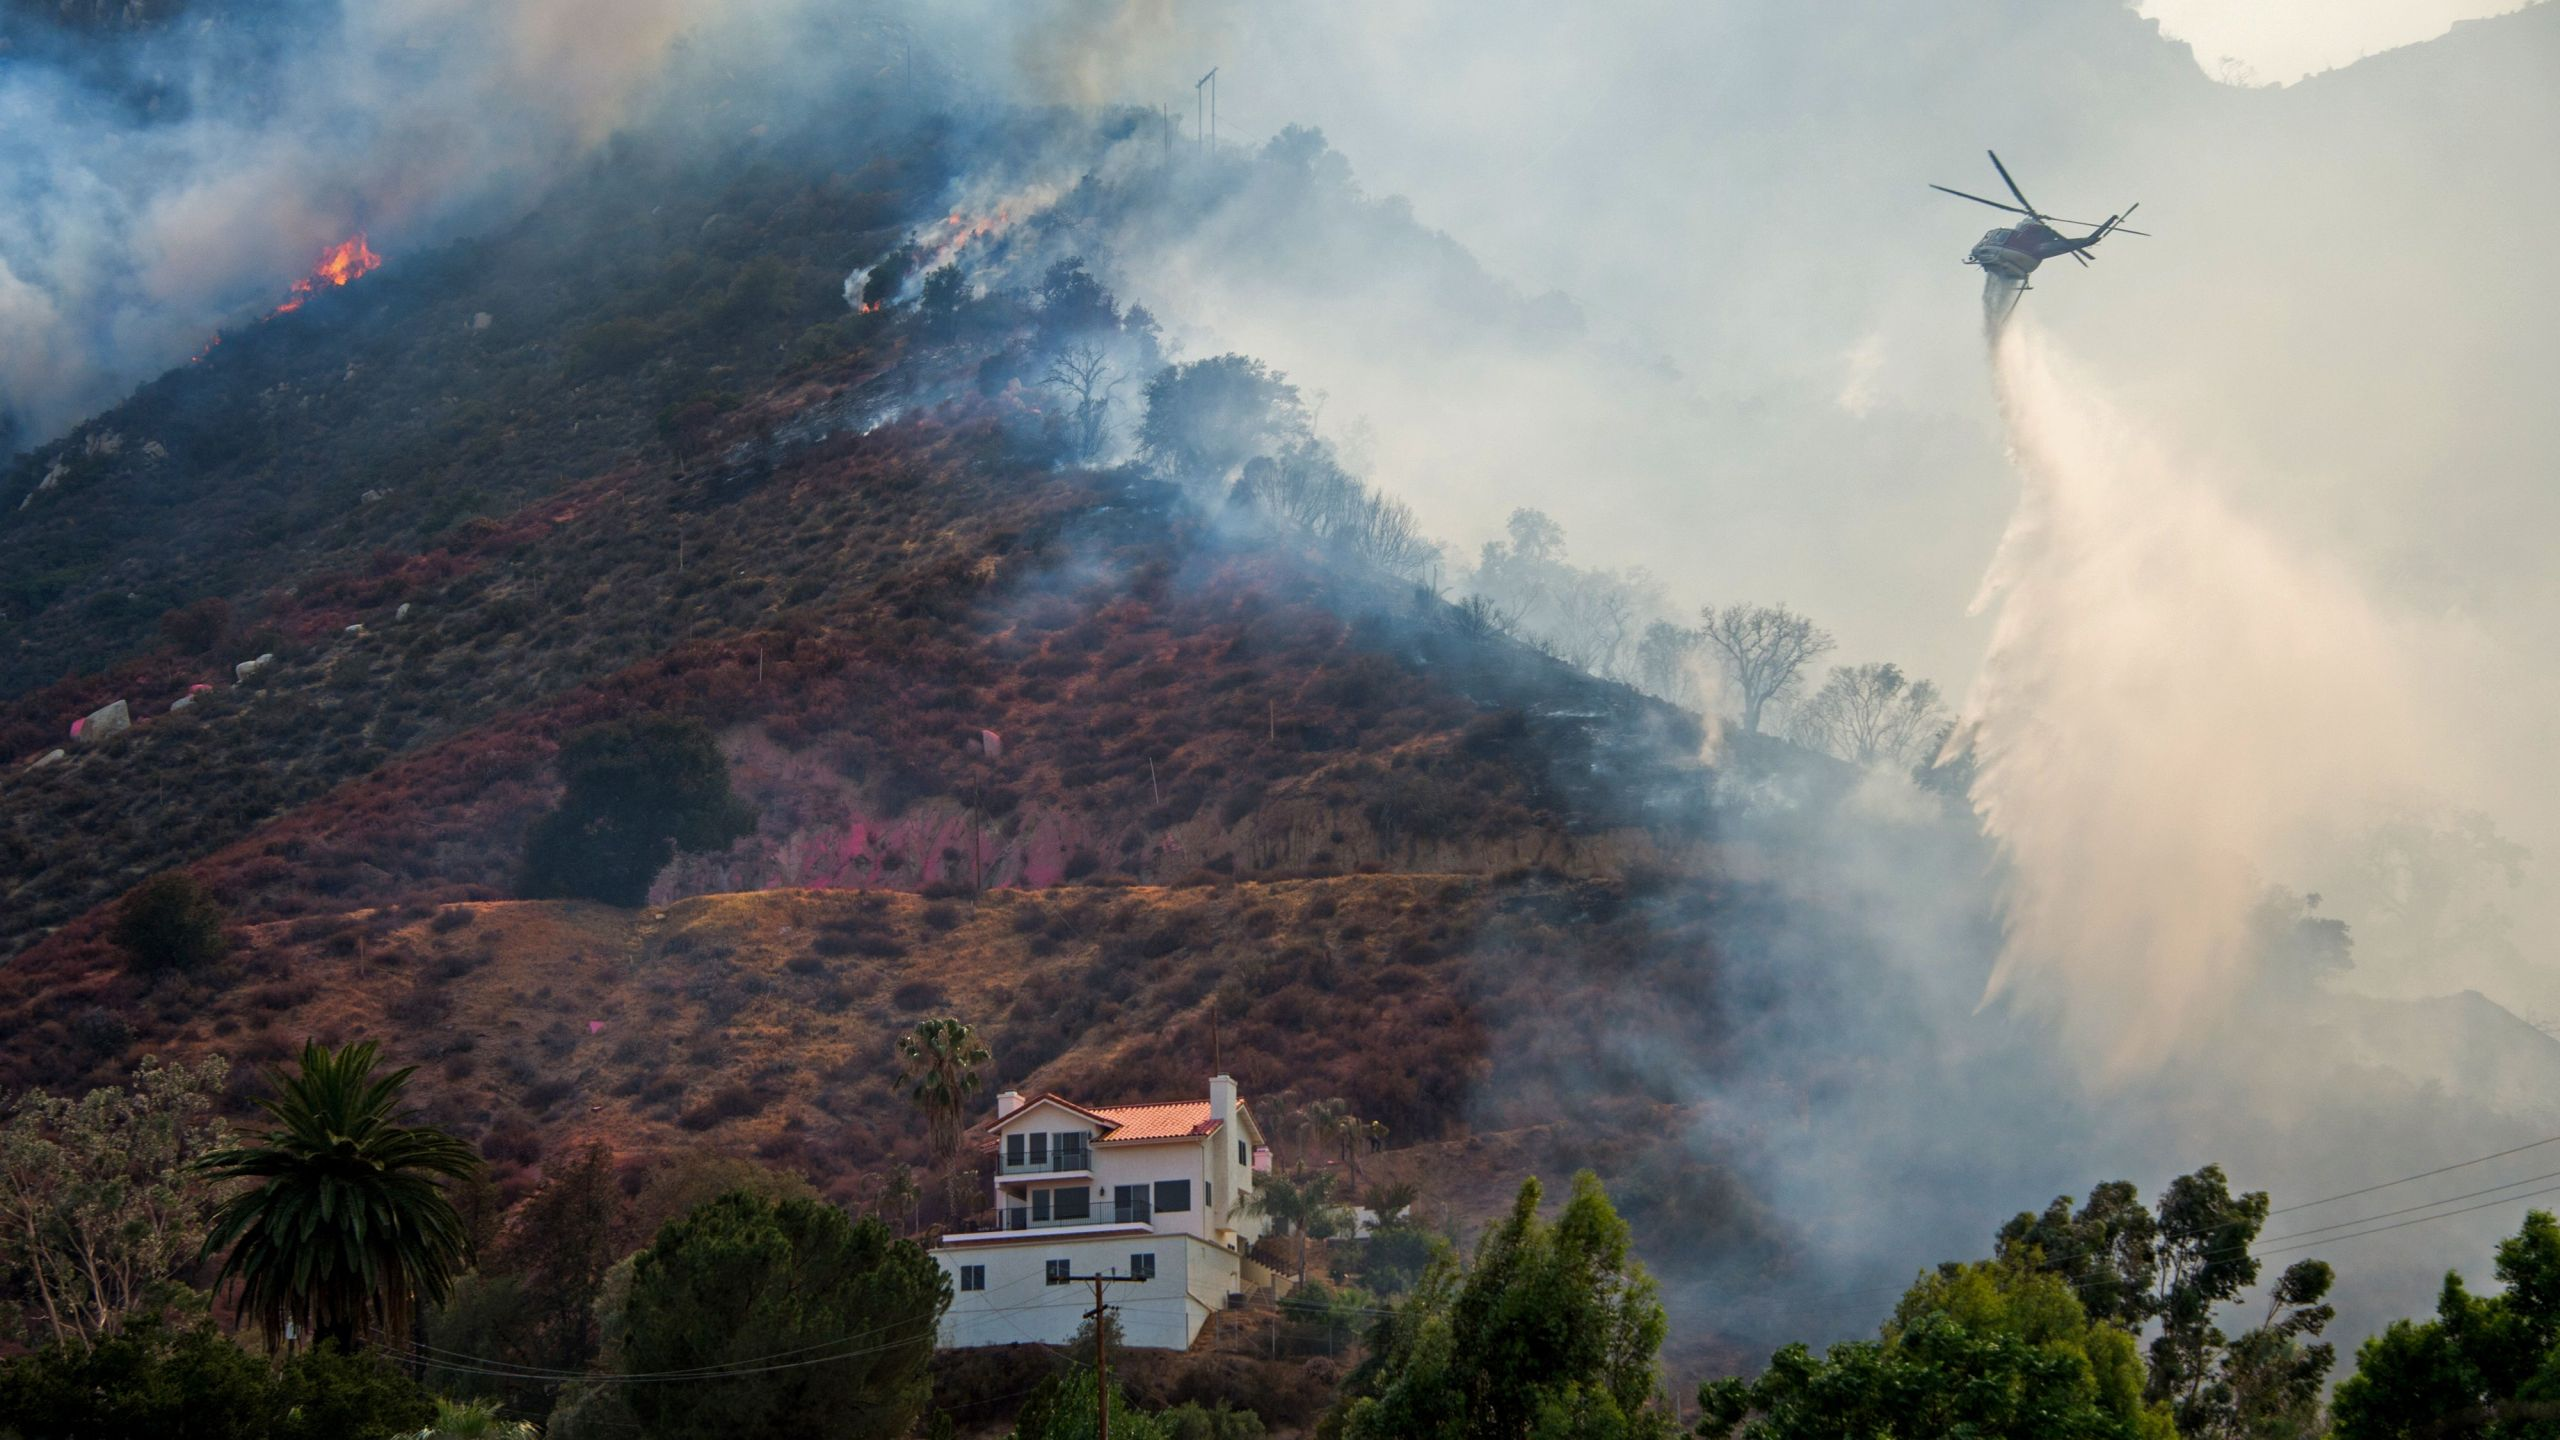 A helicopter drops water to protect a home from the Holy Fire in Lake Elsinore, California on Aug. 10, 2018.(Credit: ROBYN BECK/AFP/Getty Images)